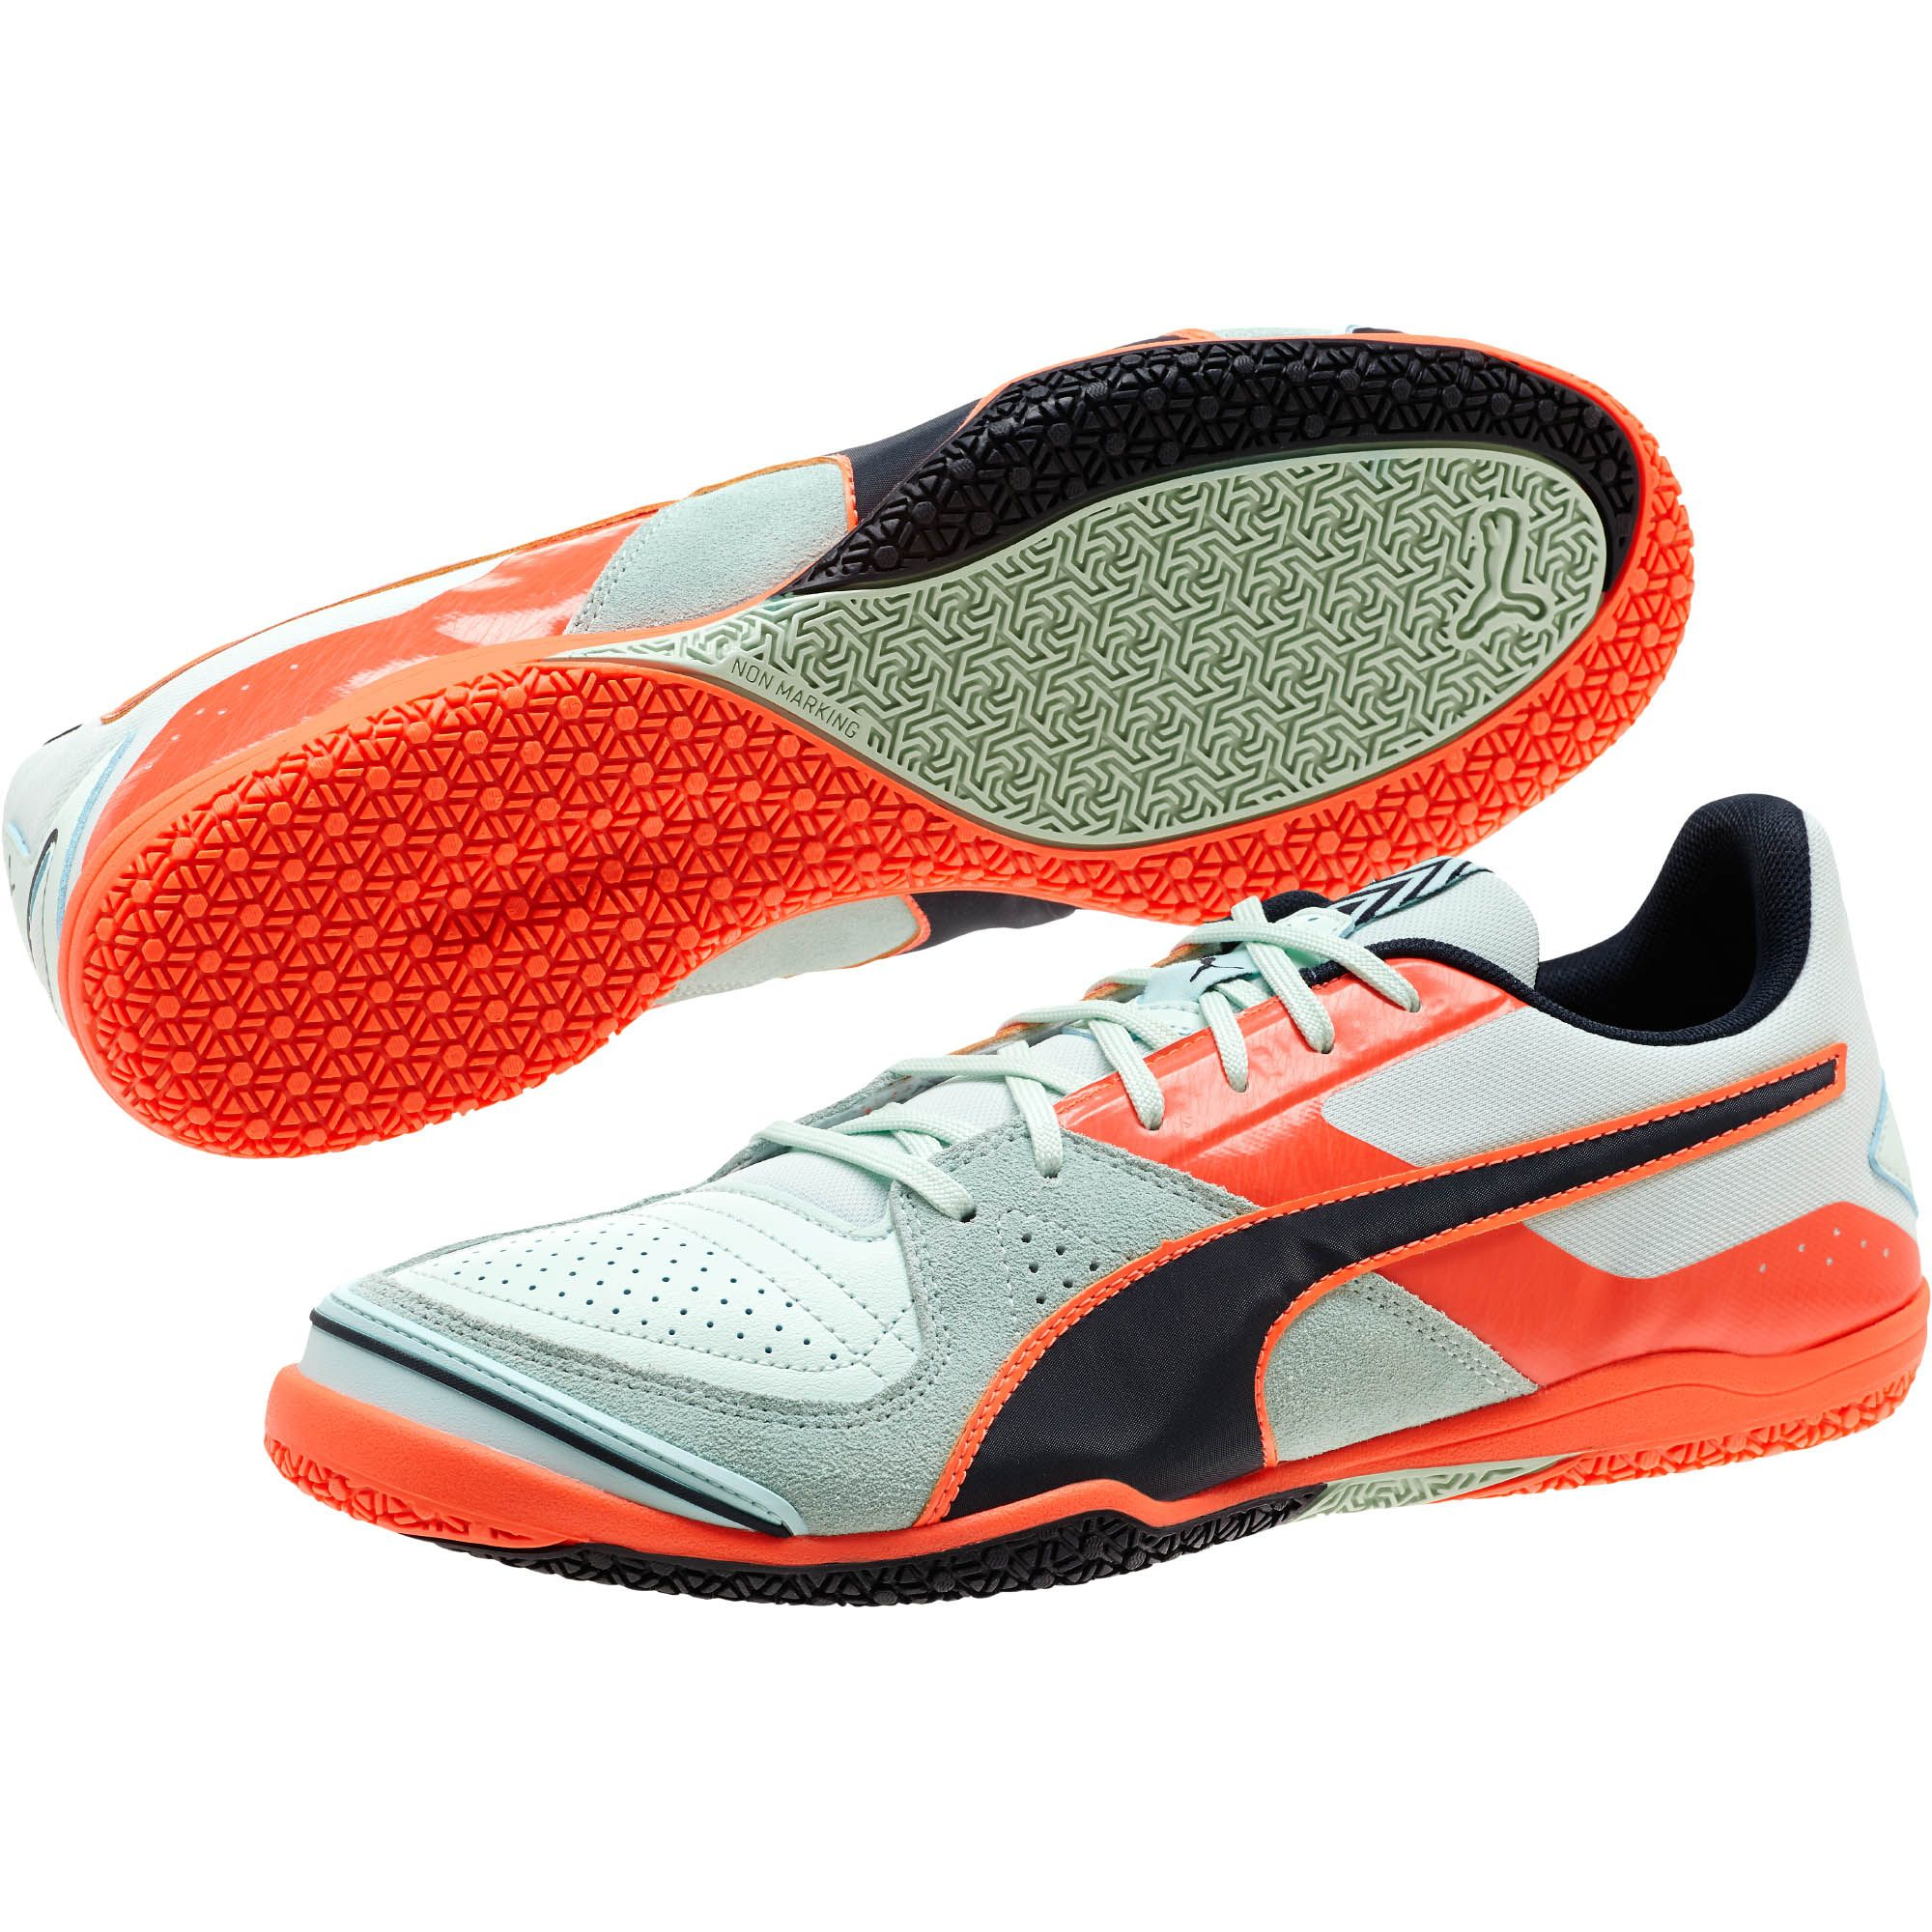 468fe0686 ... real lyst puma invicto sala mens indoor soccer shoes in gray for men  d683a 717e1